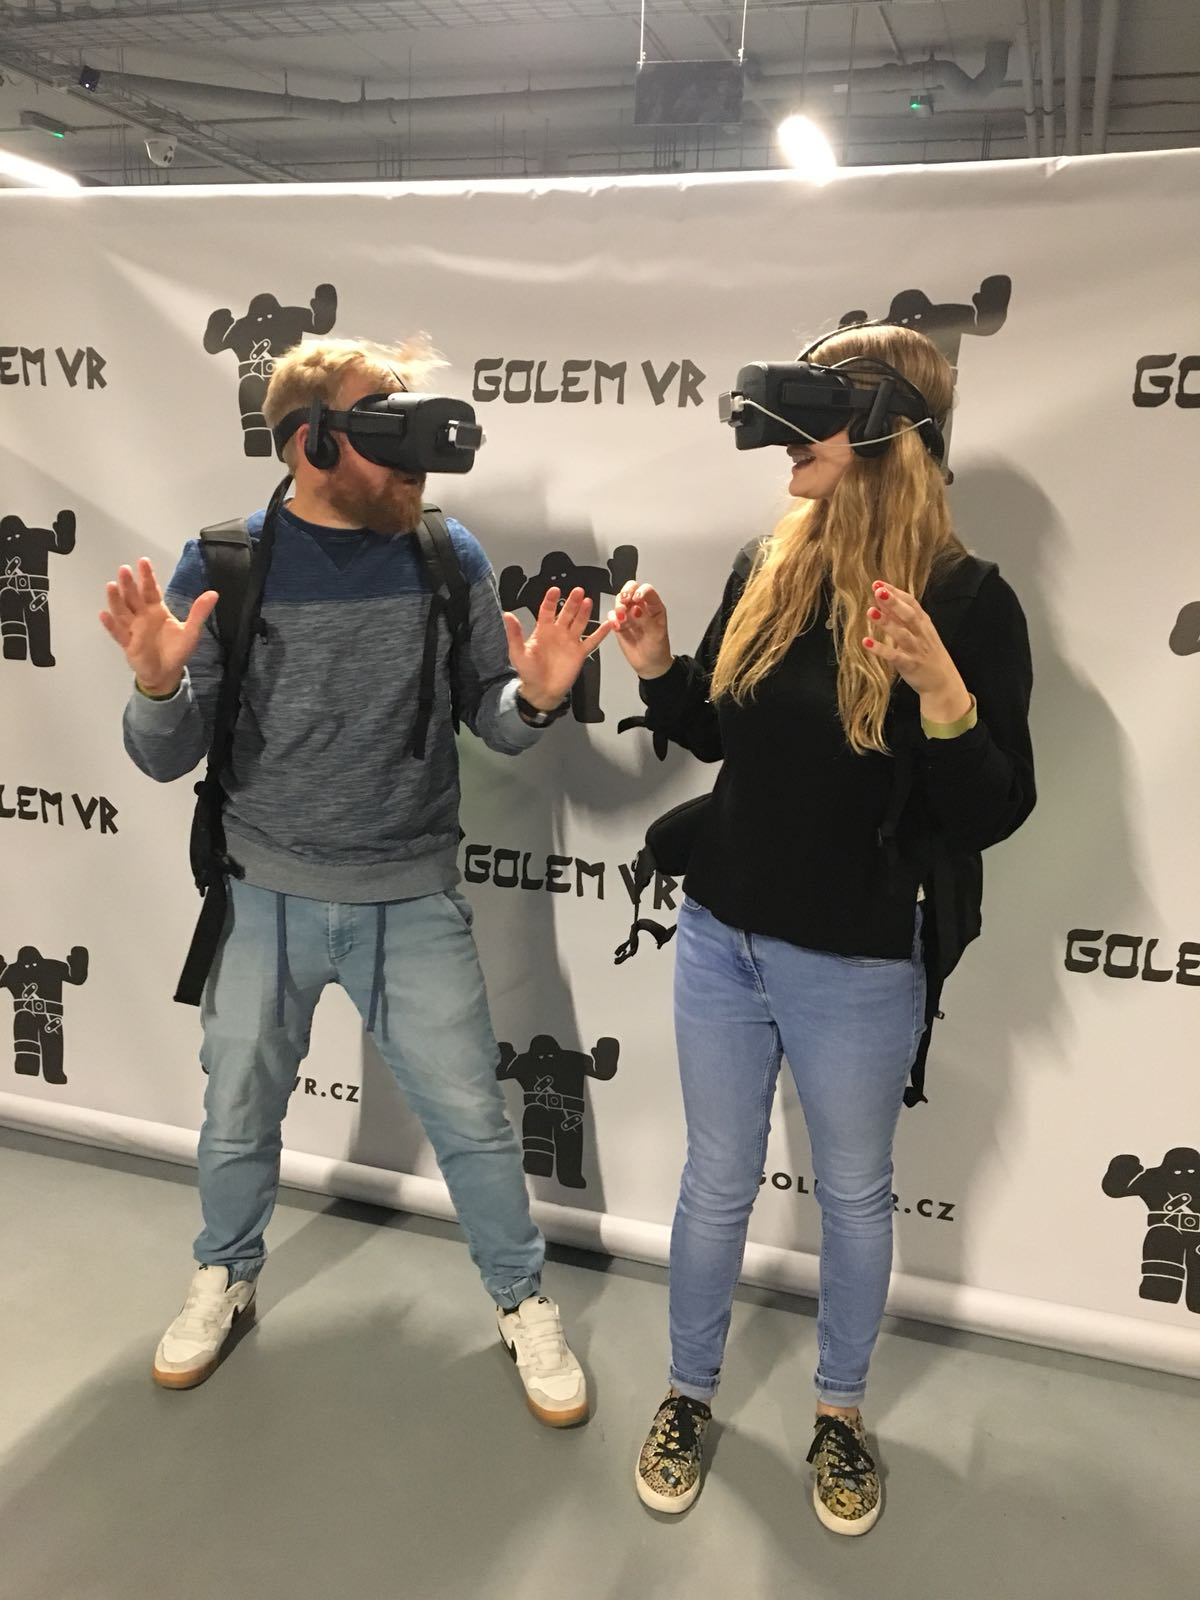 Europes_largest_VR_experience